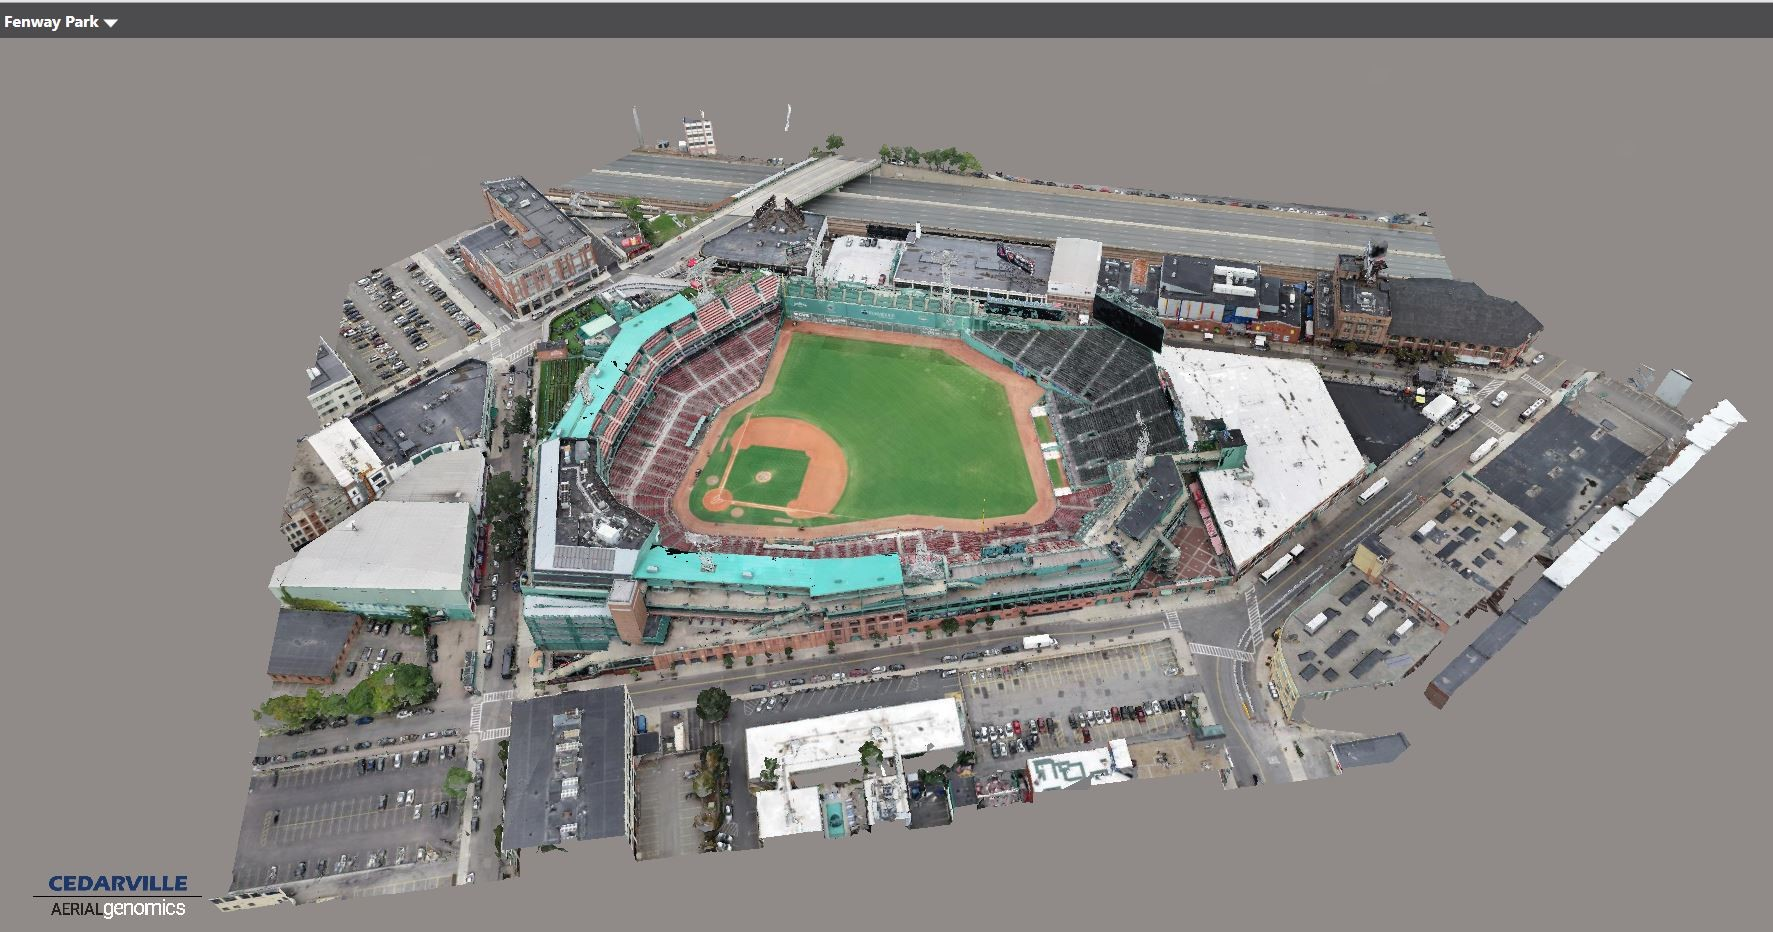 3D Model of Fenway Park, Boston